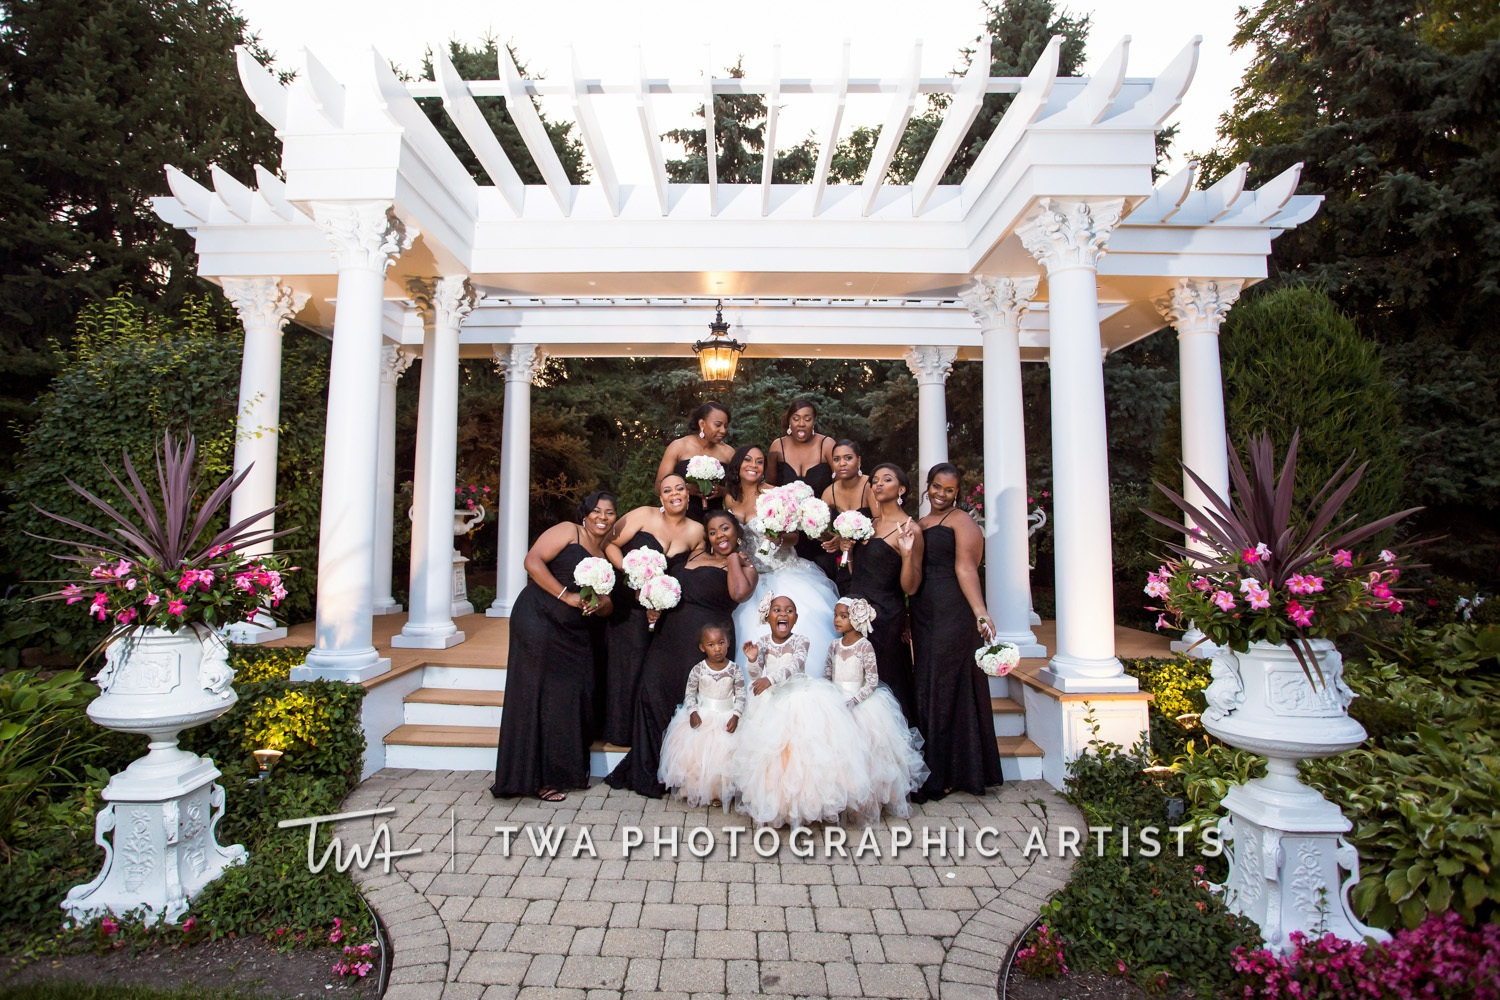 Chicago-Wedding-Photographer-TWA-Photographic-Artists-Haley-Mansion_Graves_Moffett_JM-031_0431